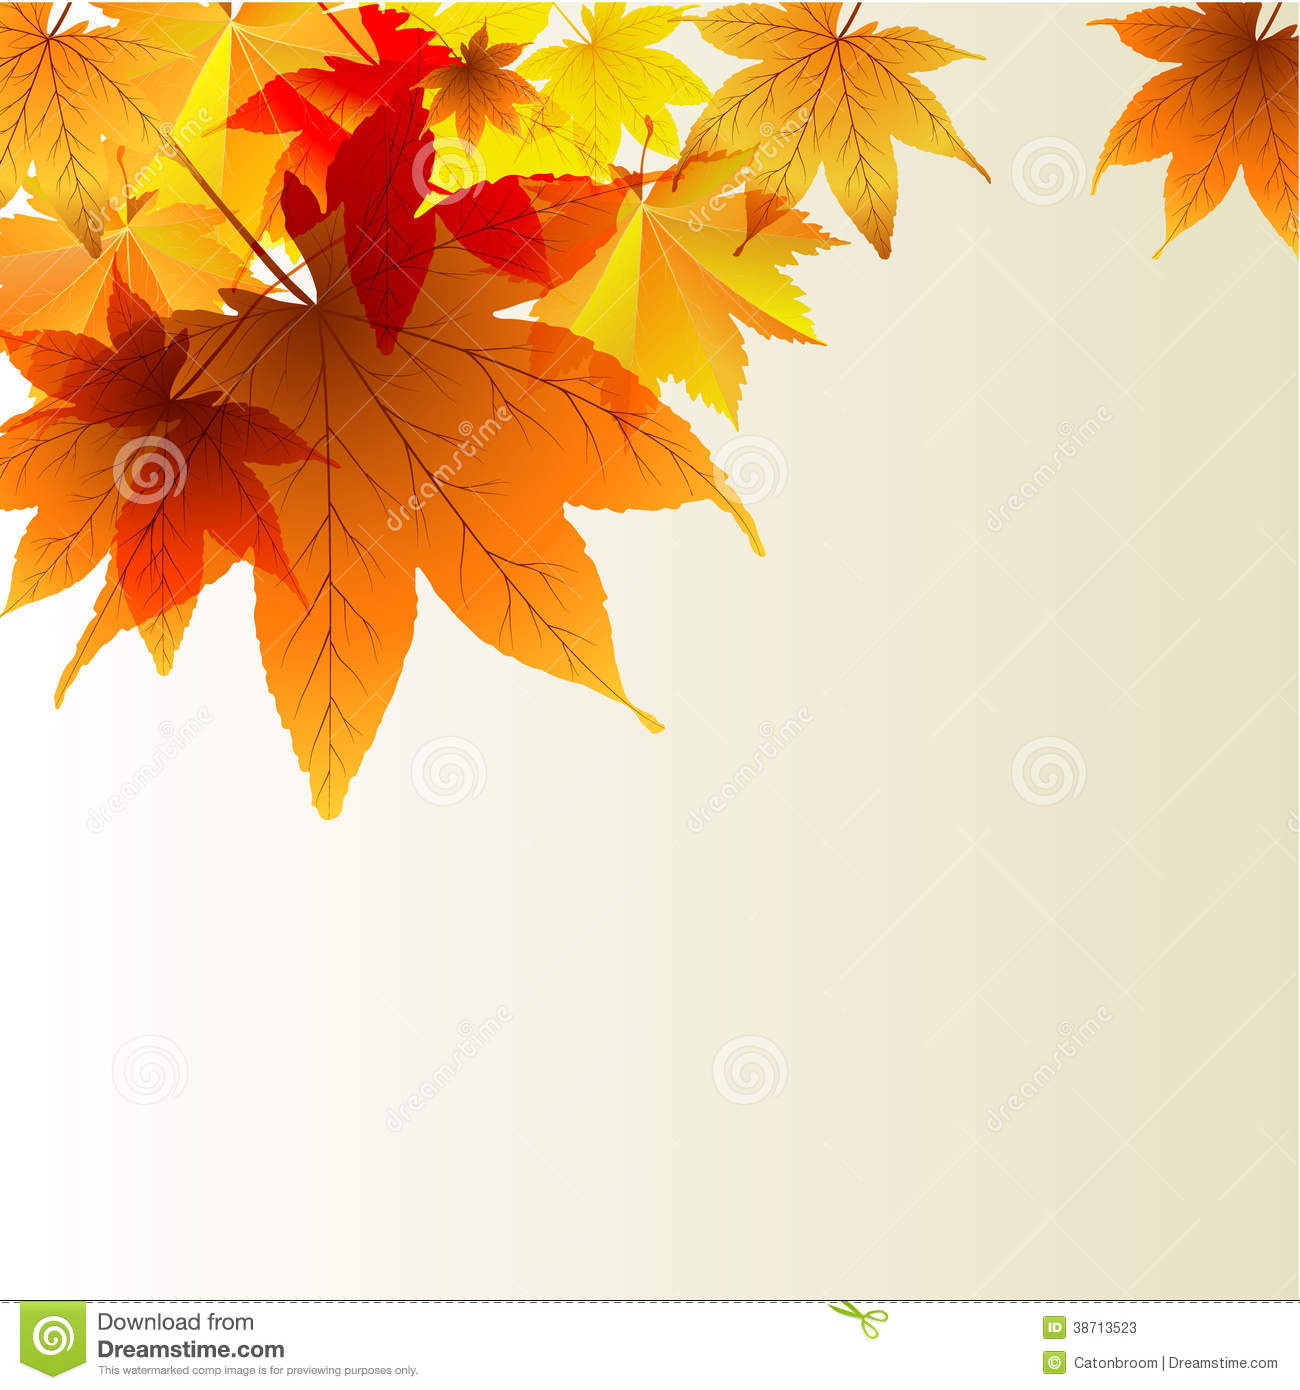 Fall Leaves Wallpaper Iphone Transparent Background With Autumn Leaves Stock